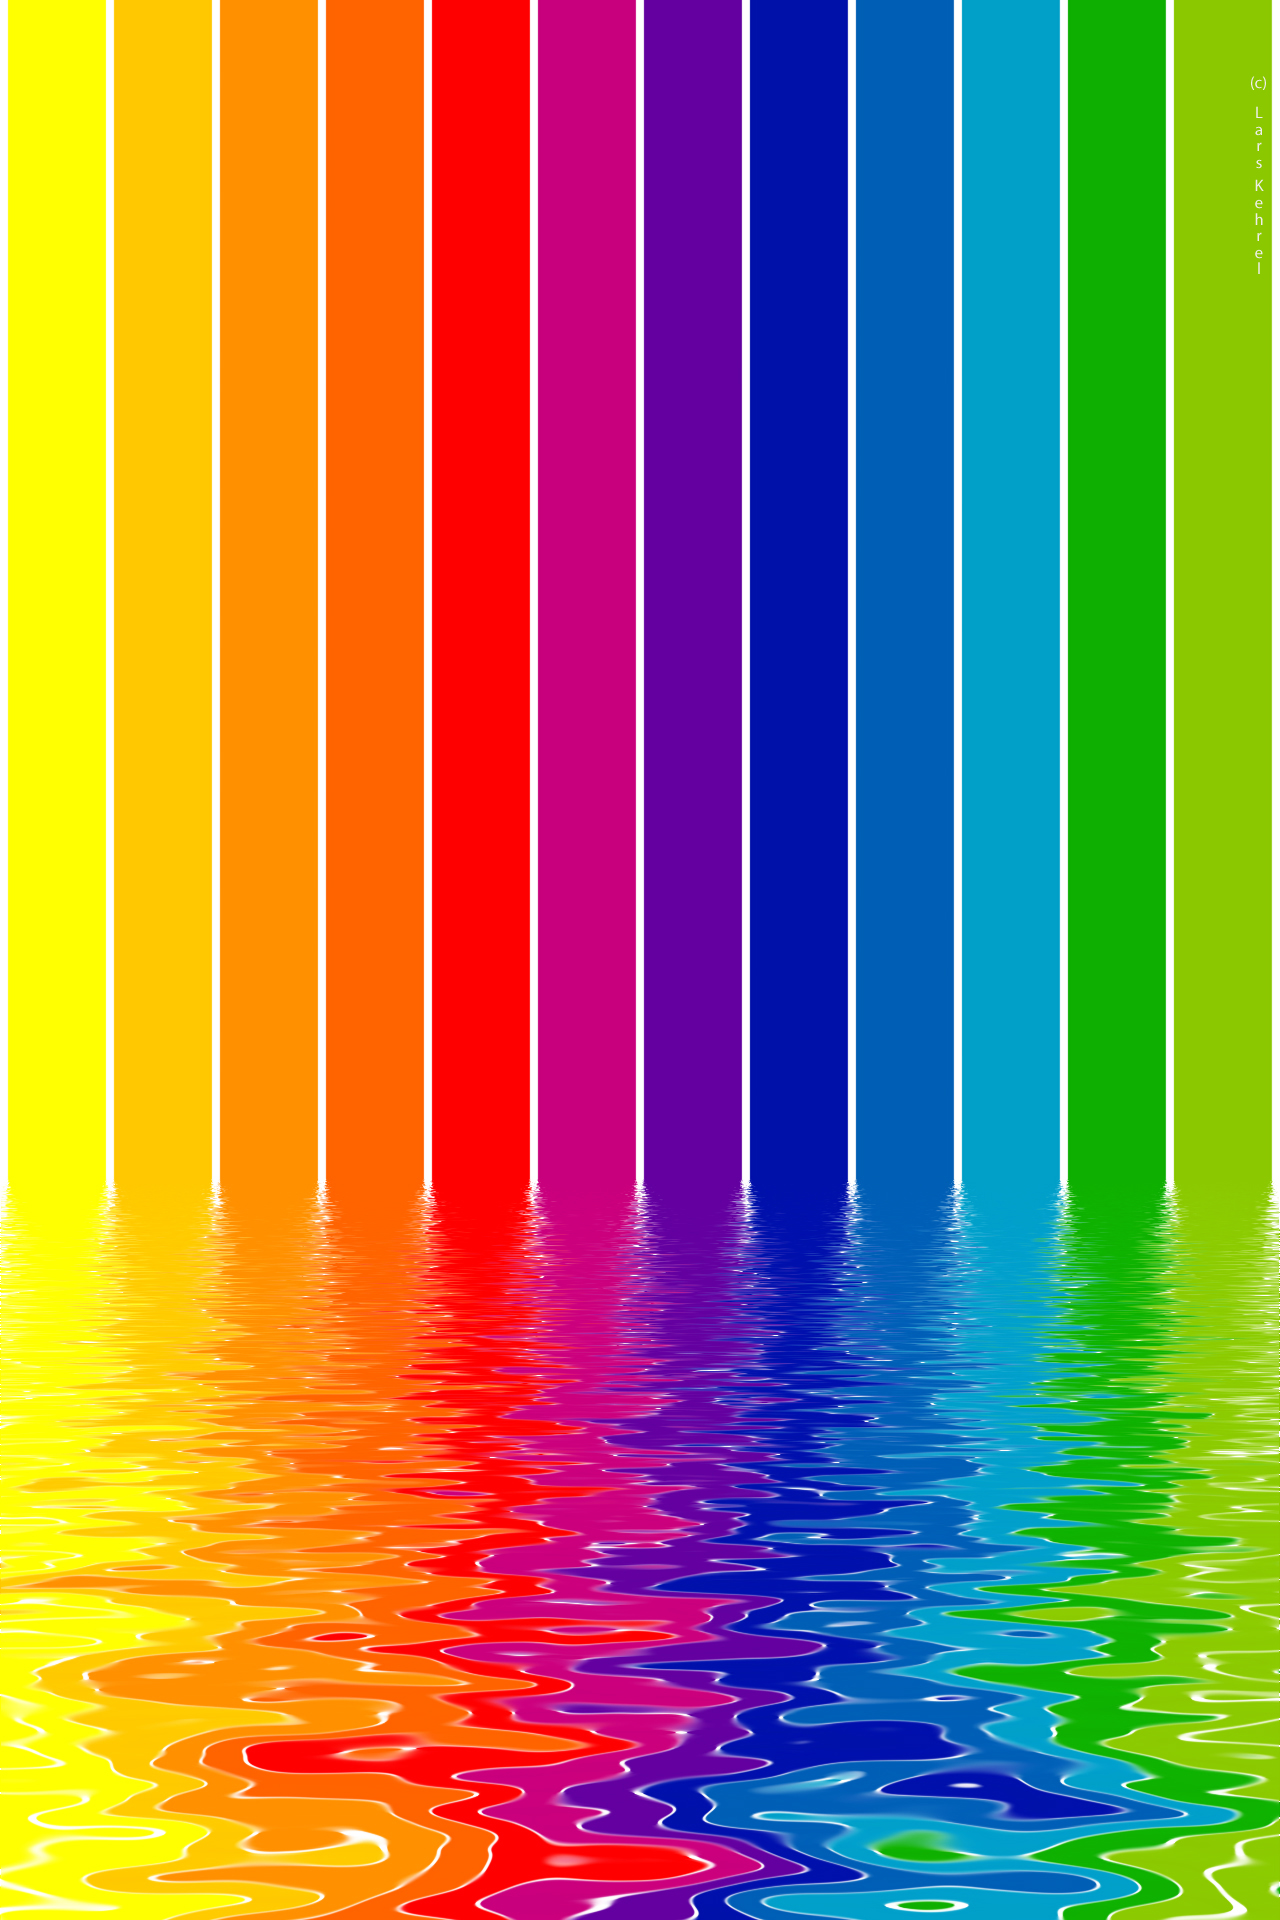 colourful iphone wallpaper colourful iphone